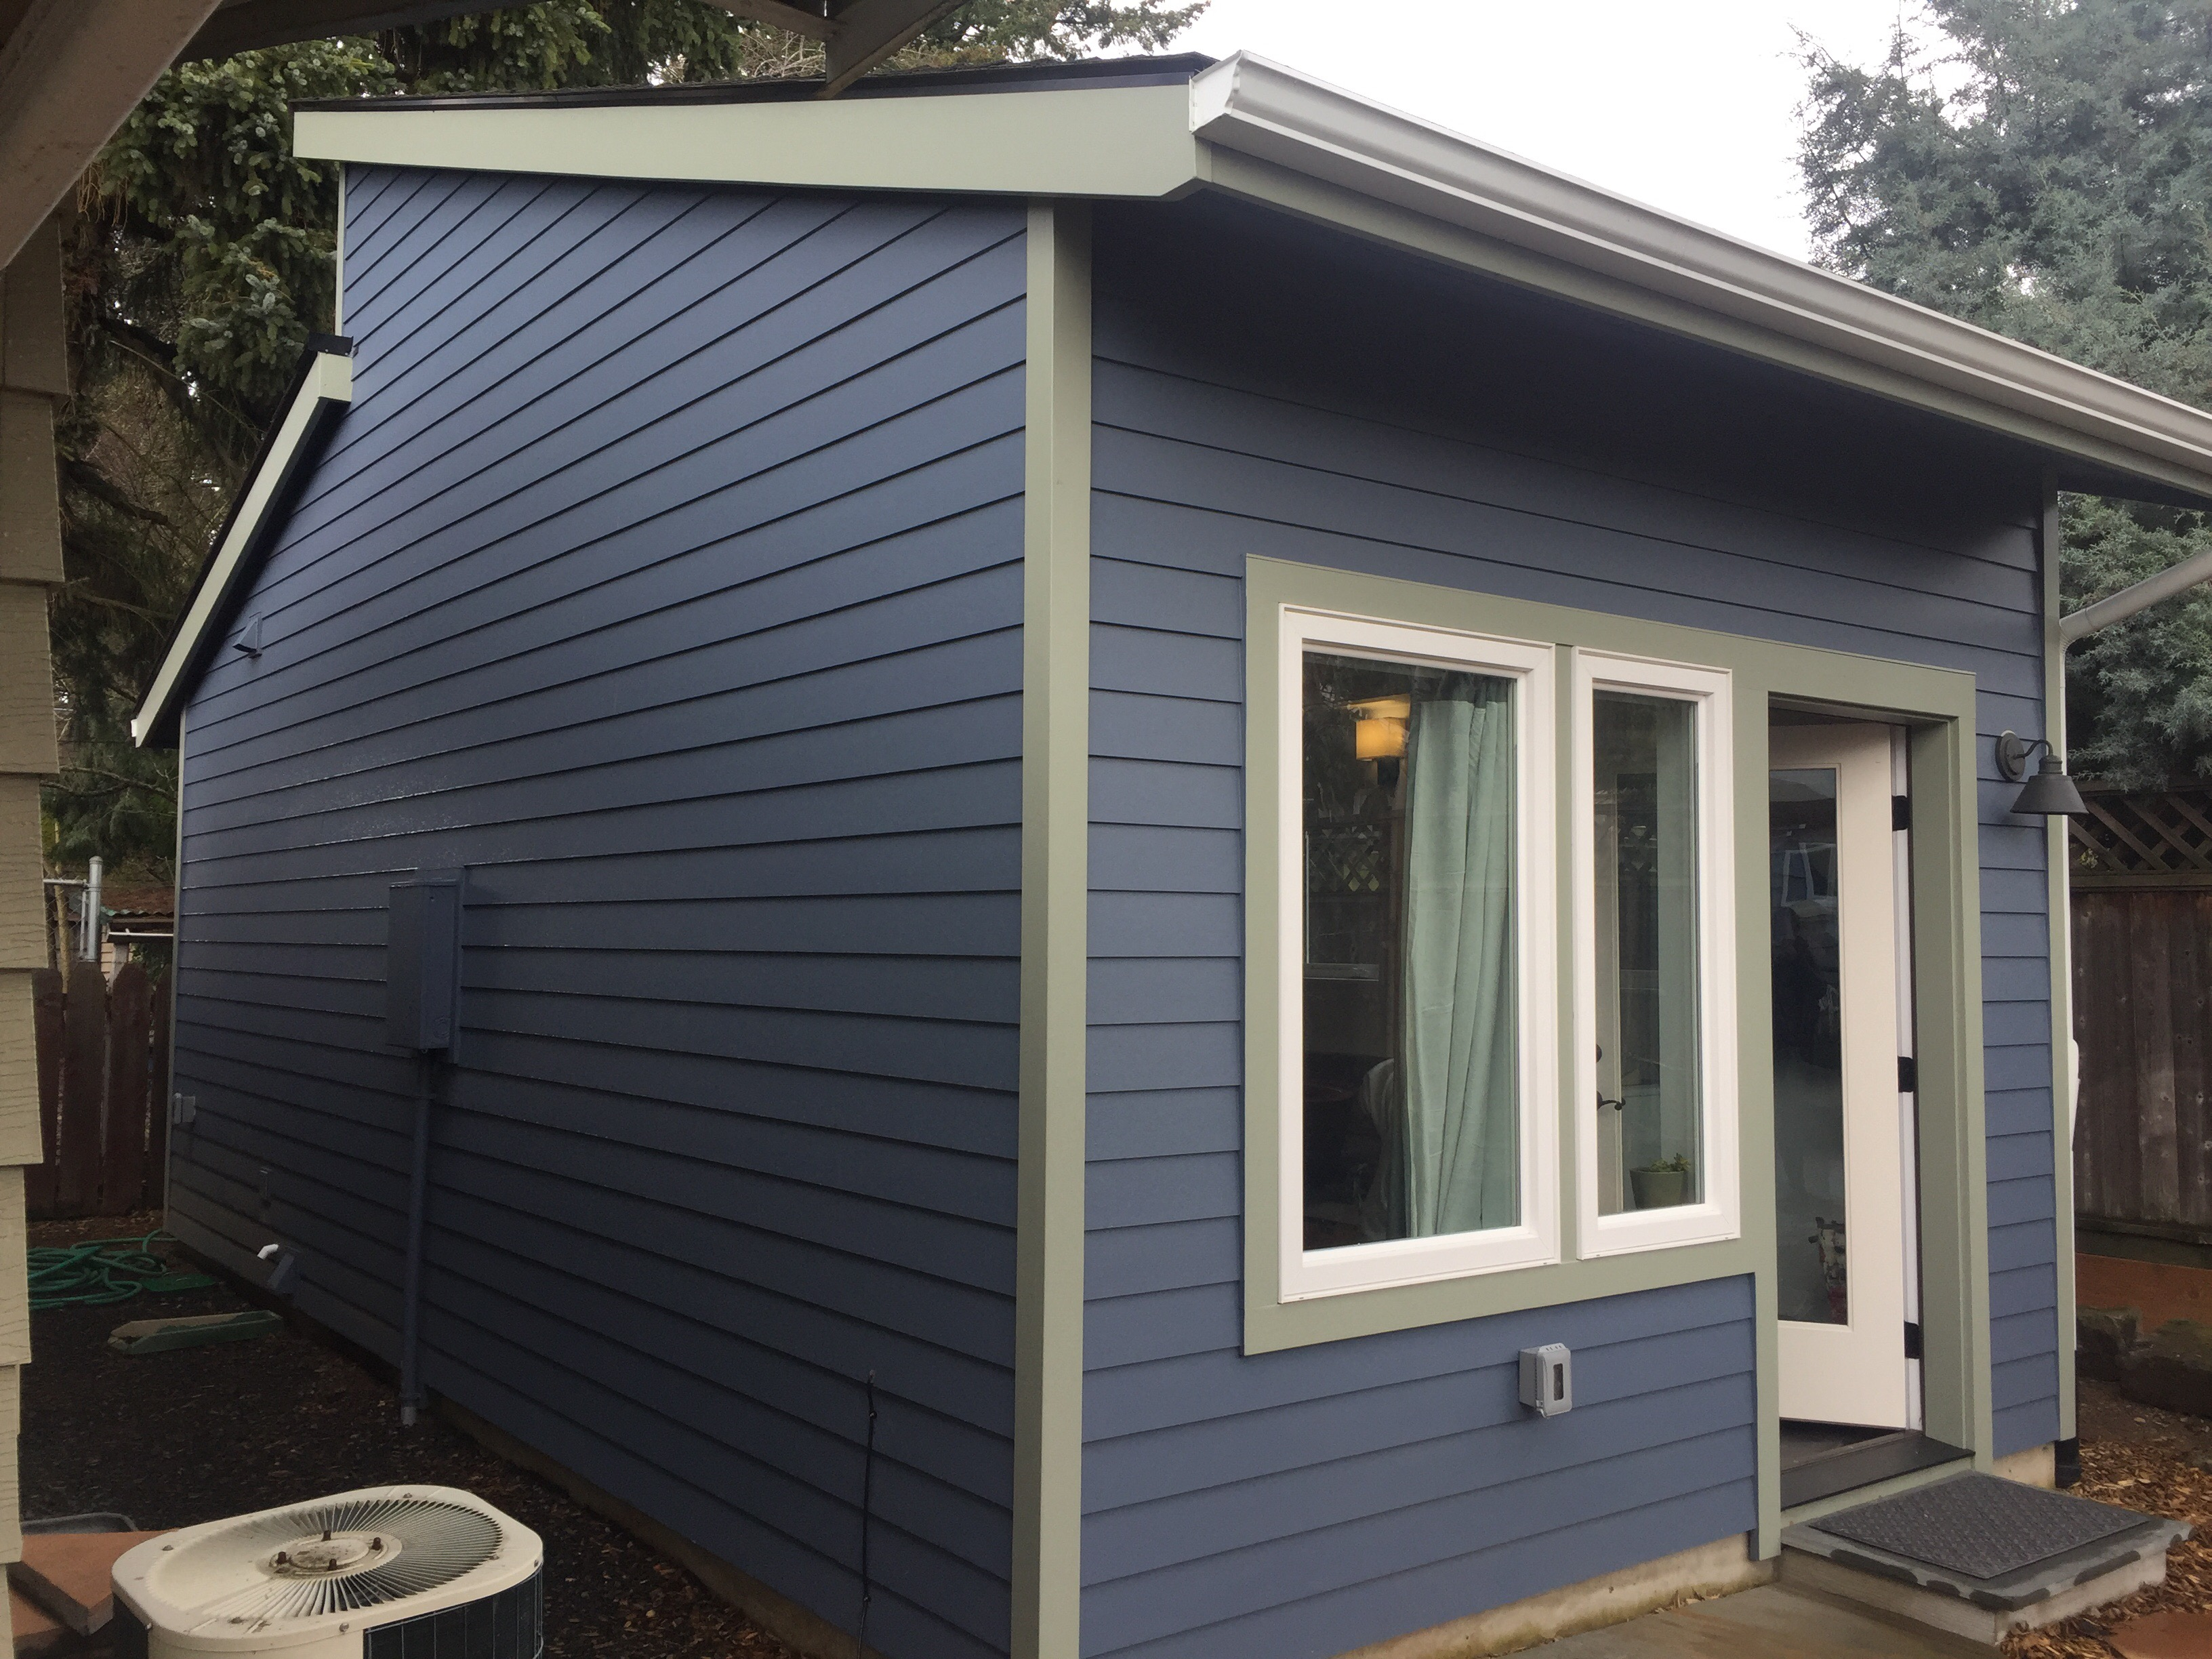 Build small live large portland s accessory dwelling for Adu garage plans